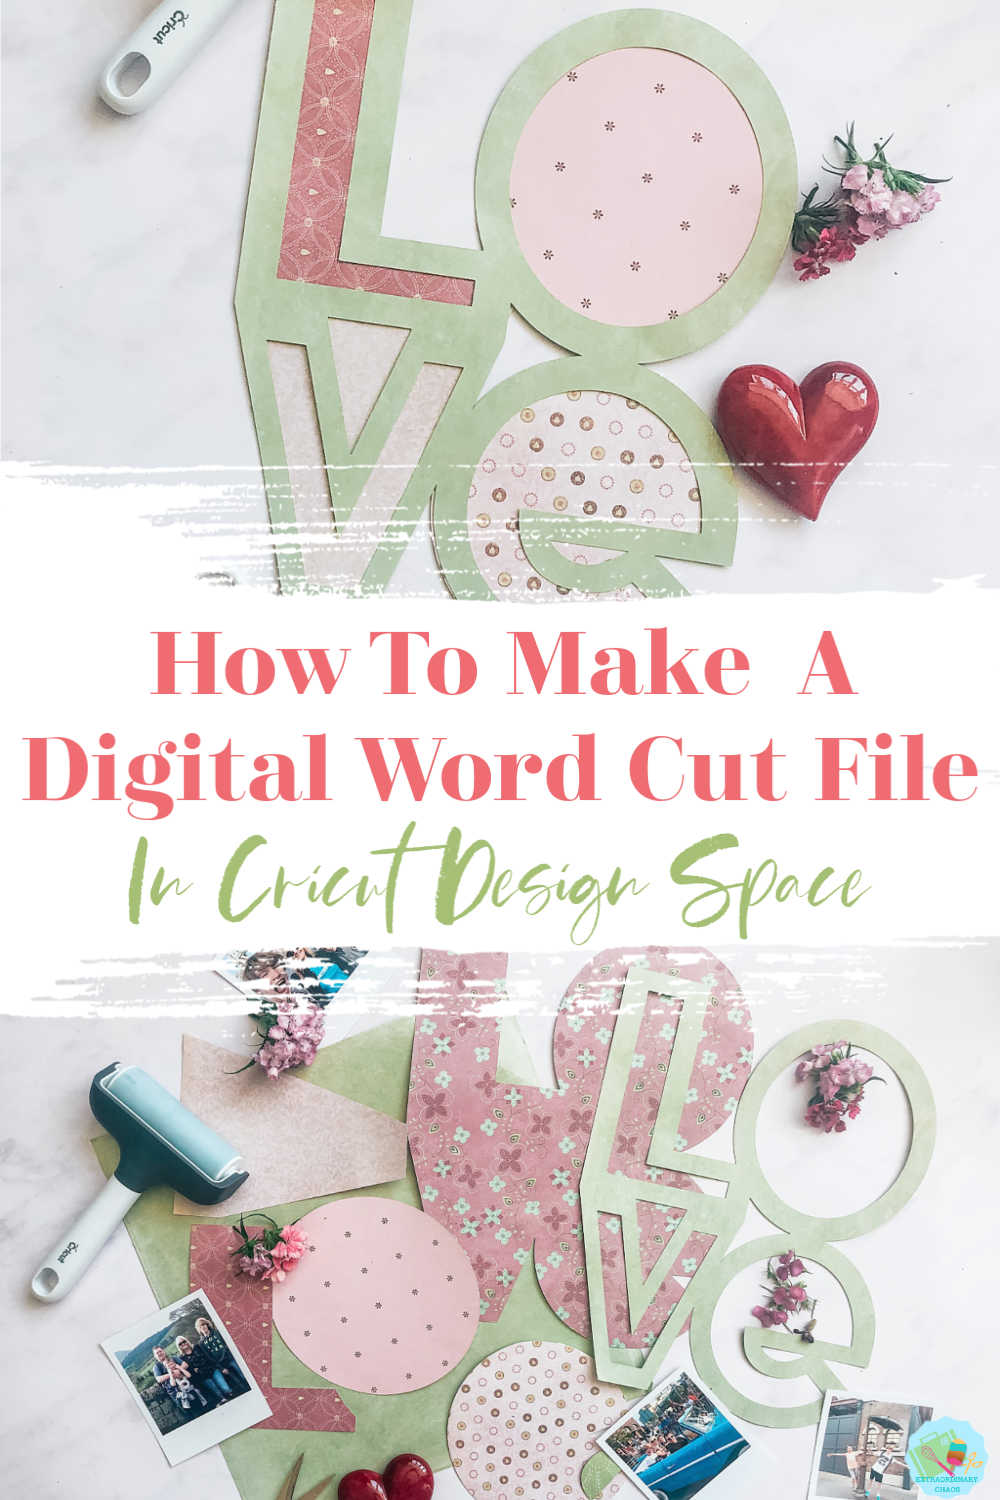 How to make a digital word Layout cut file in Cricut Design Space